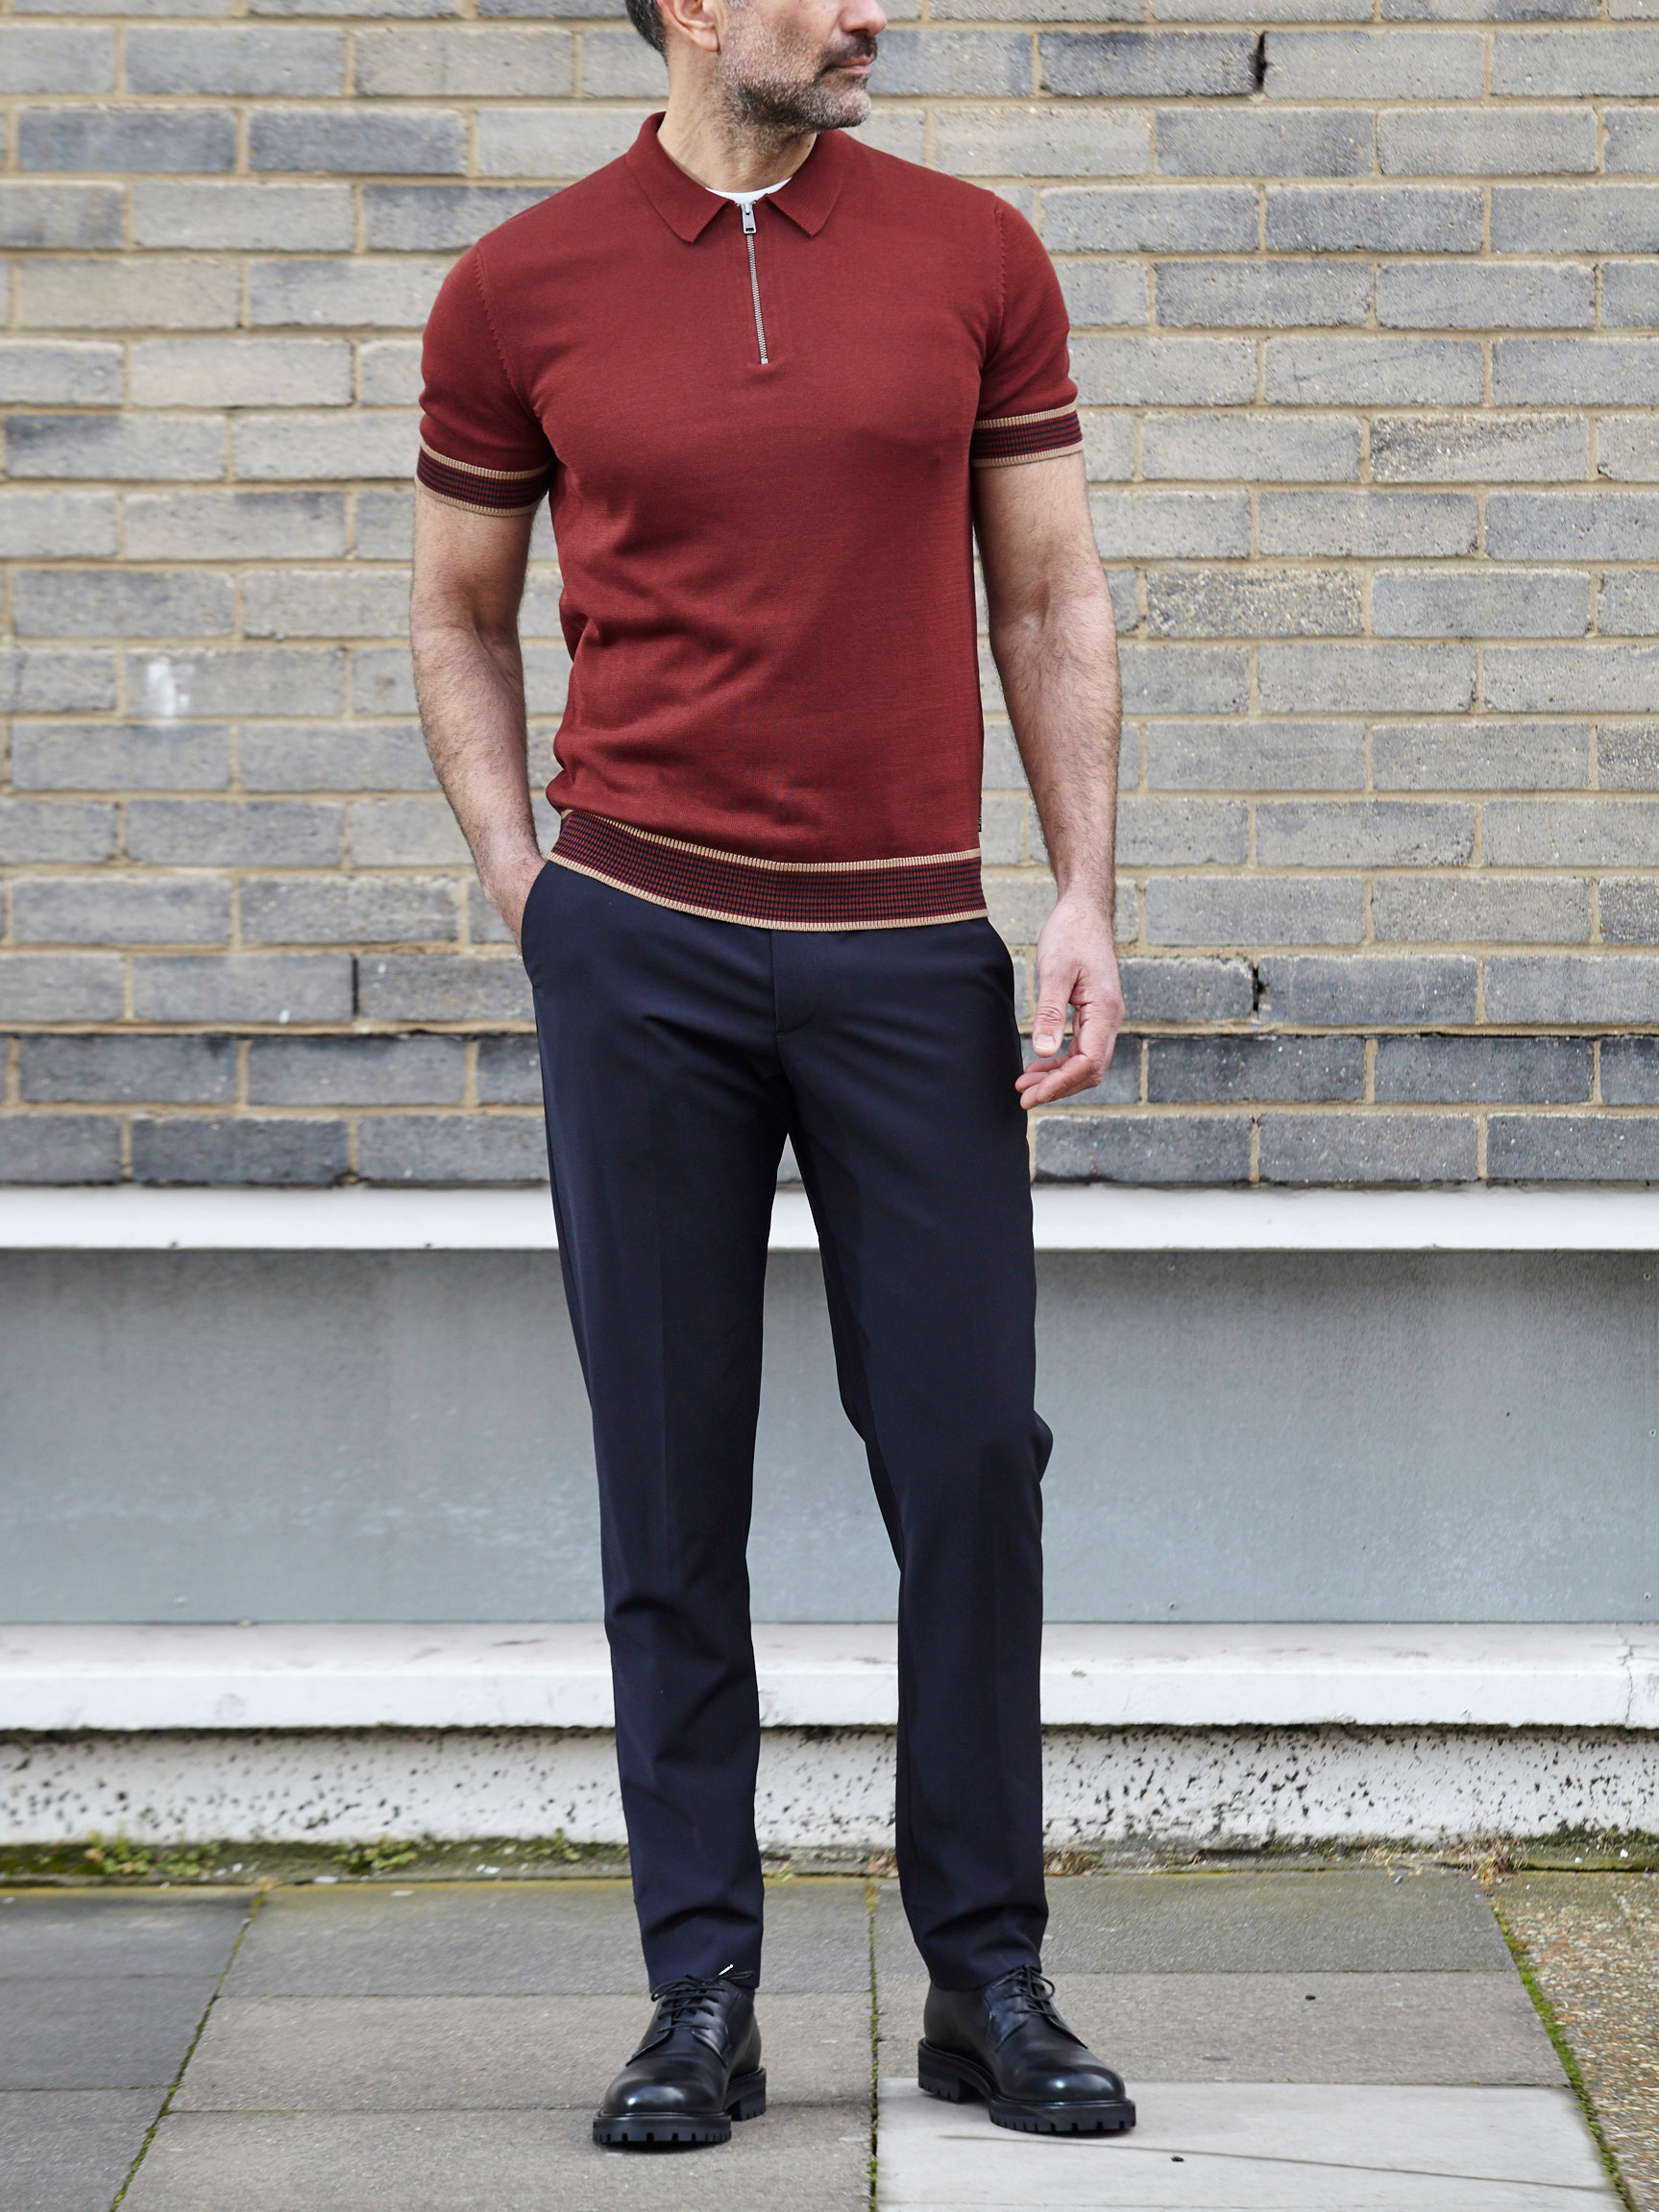 How to wear red short sleeve polo shirts | Thread.com